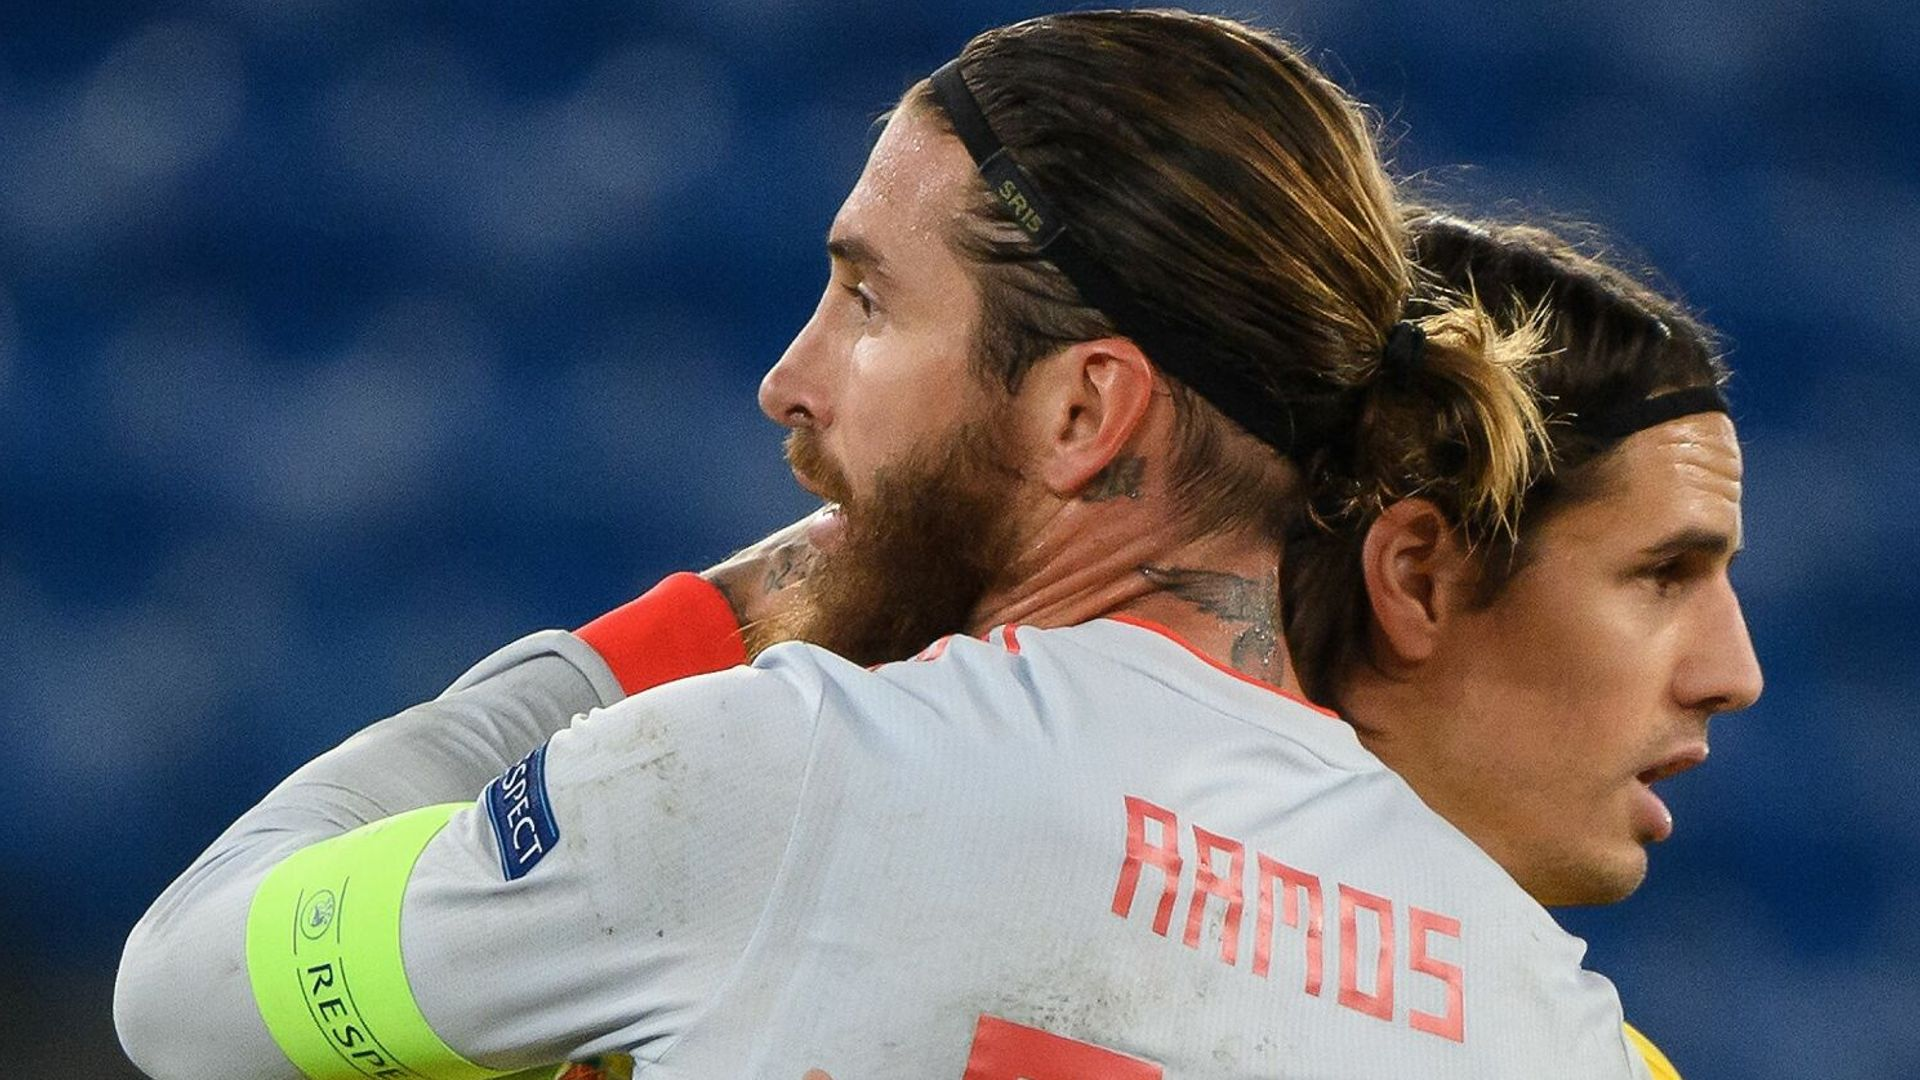 Nations League: Ramos misses two pens, France qualify